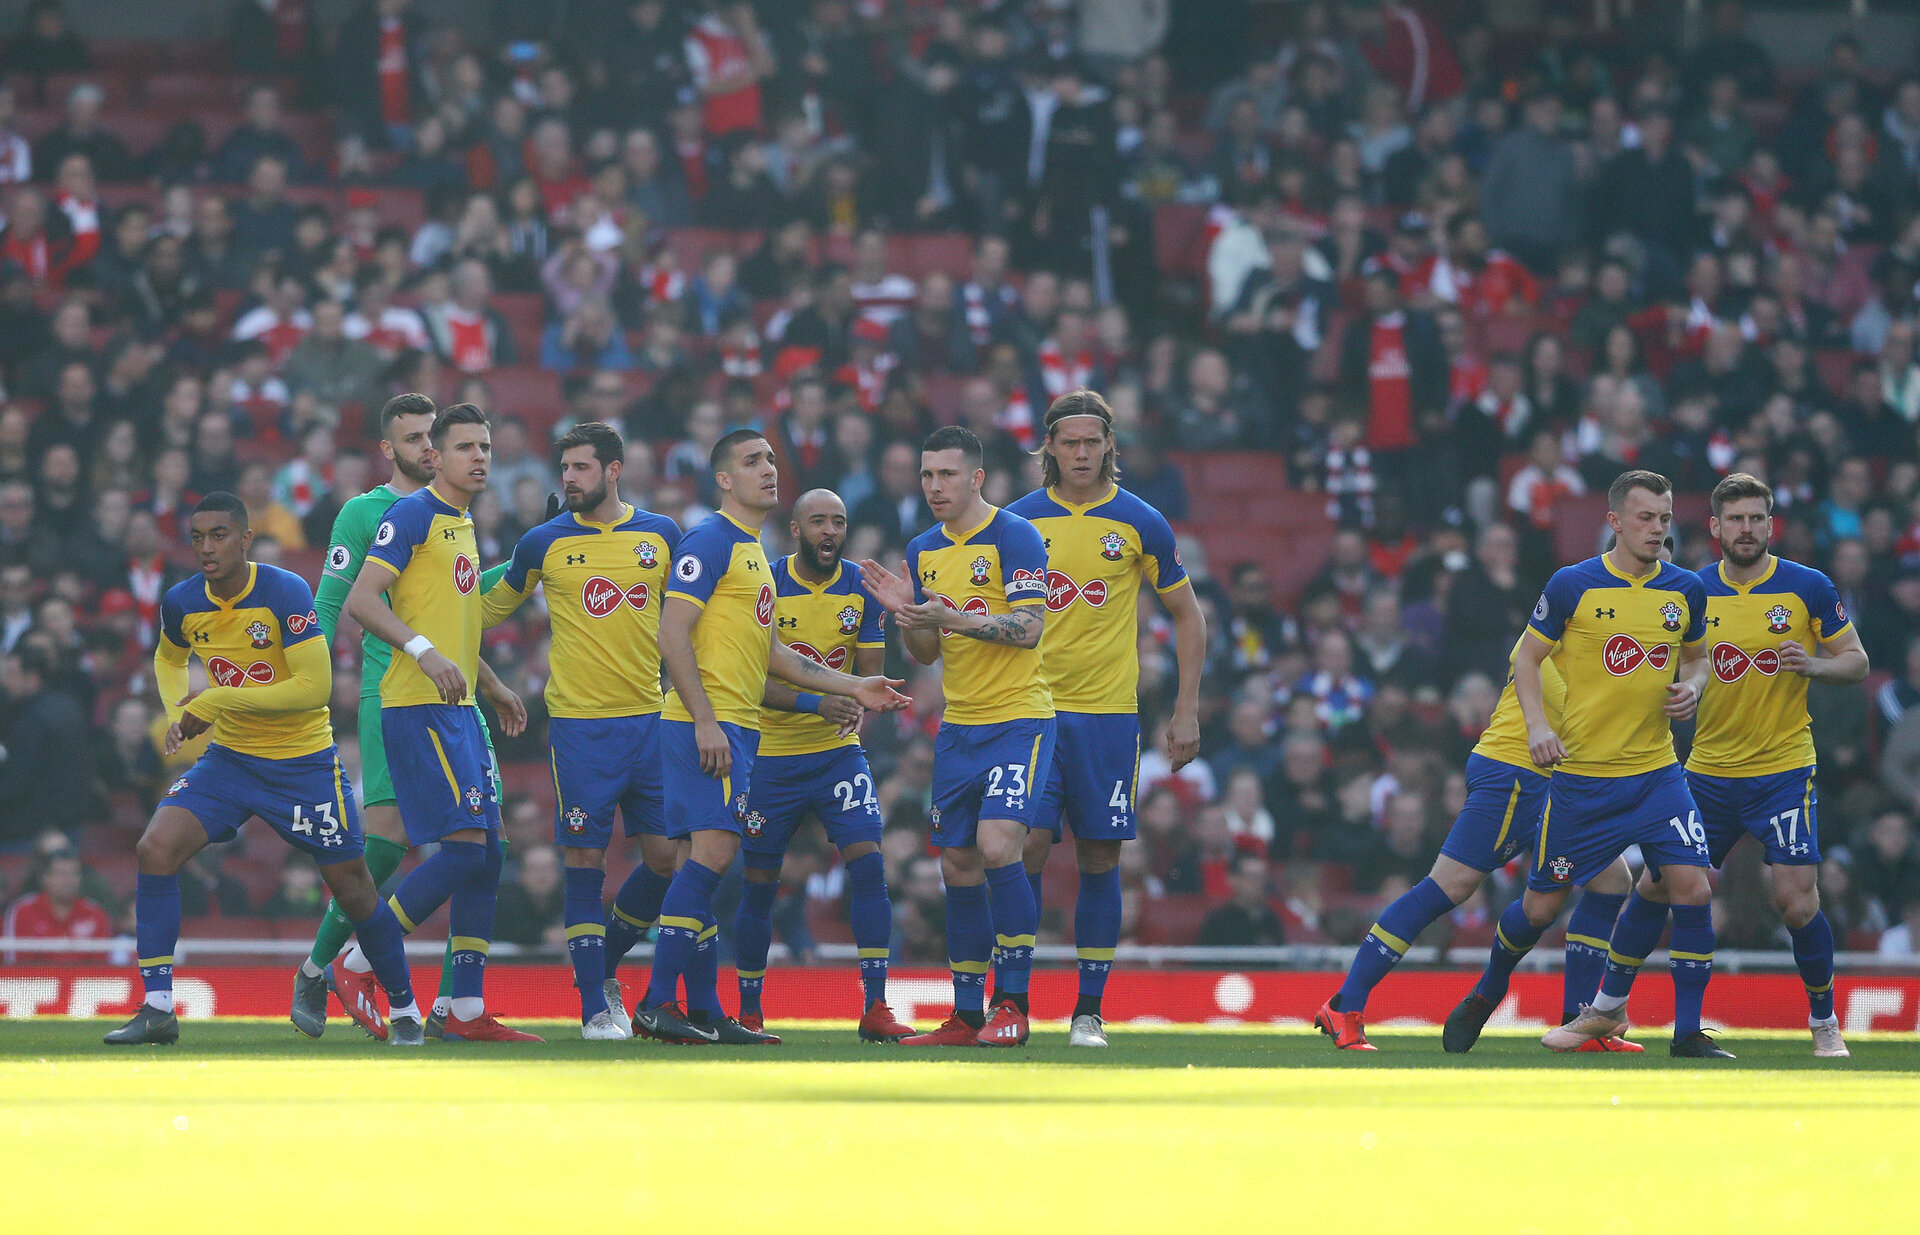 LONDON, ENGLAND - FEBRUARY 24: Players of Southampton during the Premier League match between Arsenal FC and Southampton FC at Emirates Stadium on February 24, 2019 in London, United Kingdom. (Photo by Matt Watson/Southampton FC via Getty Images)